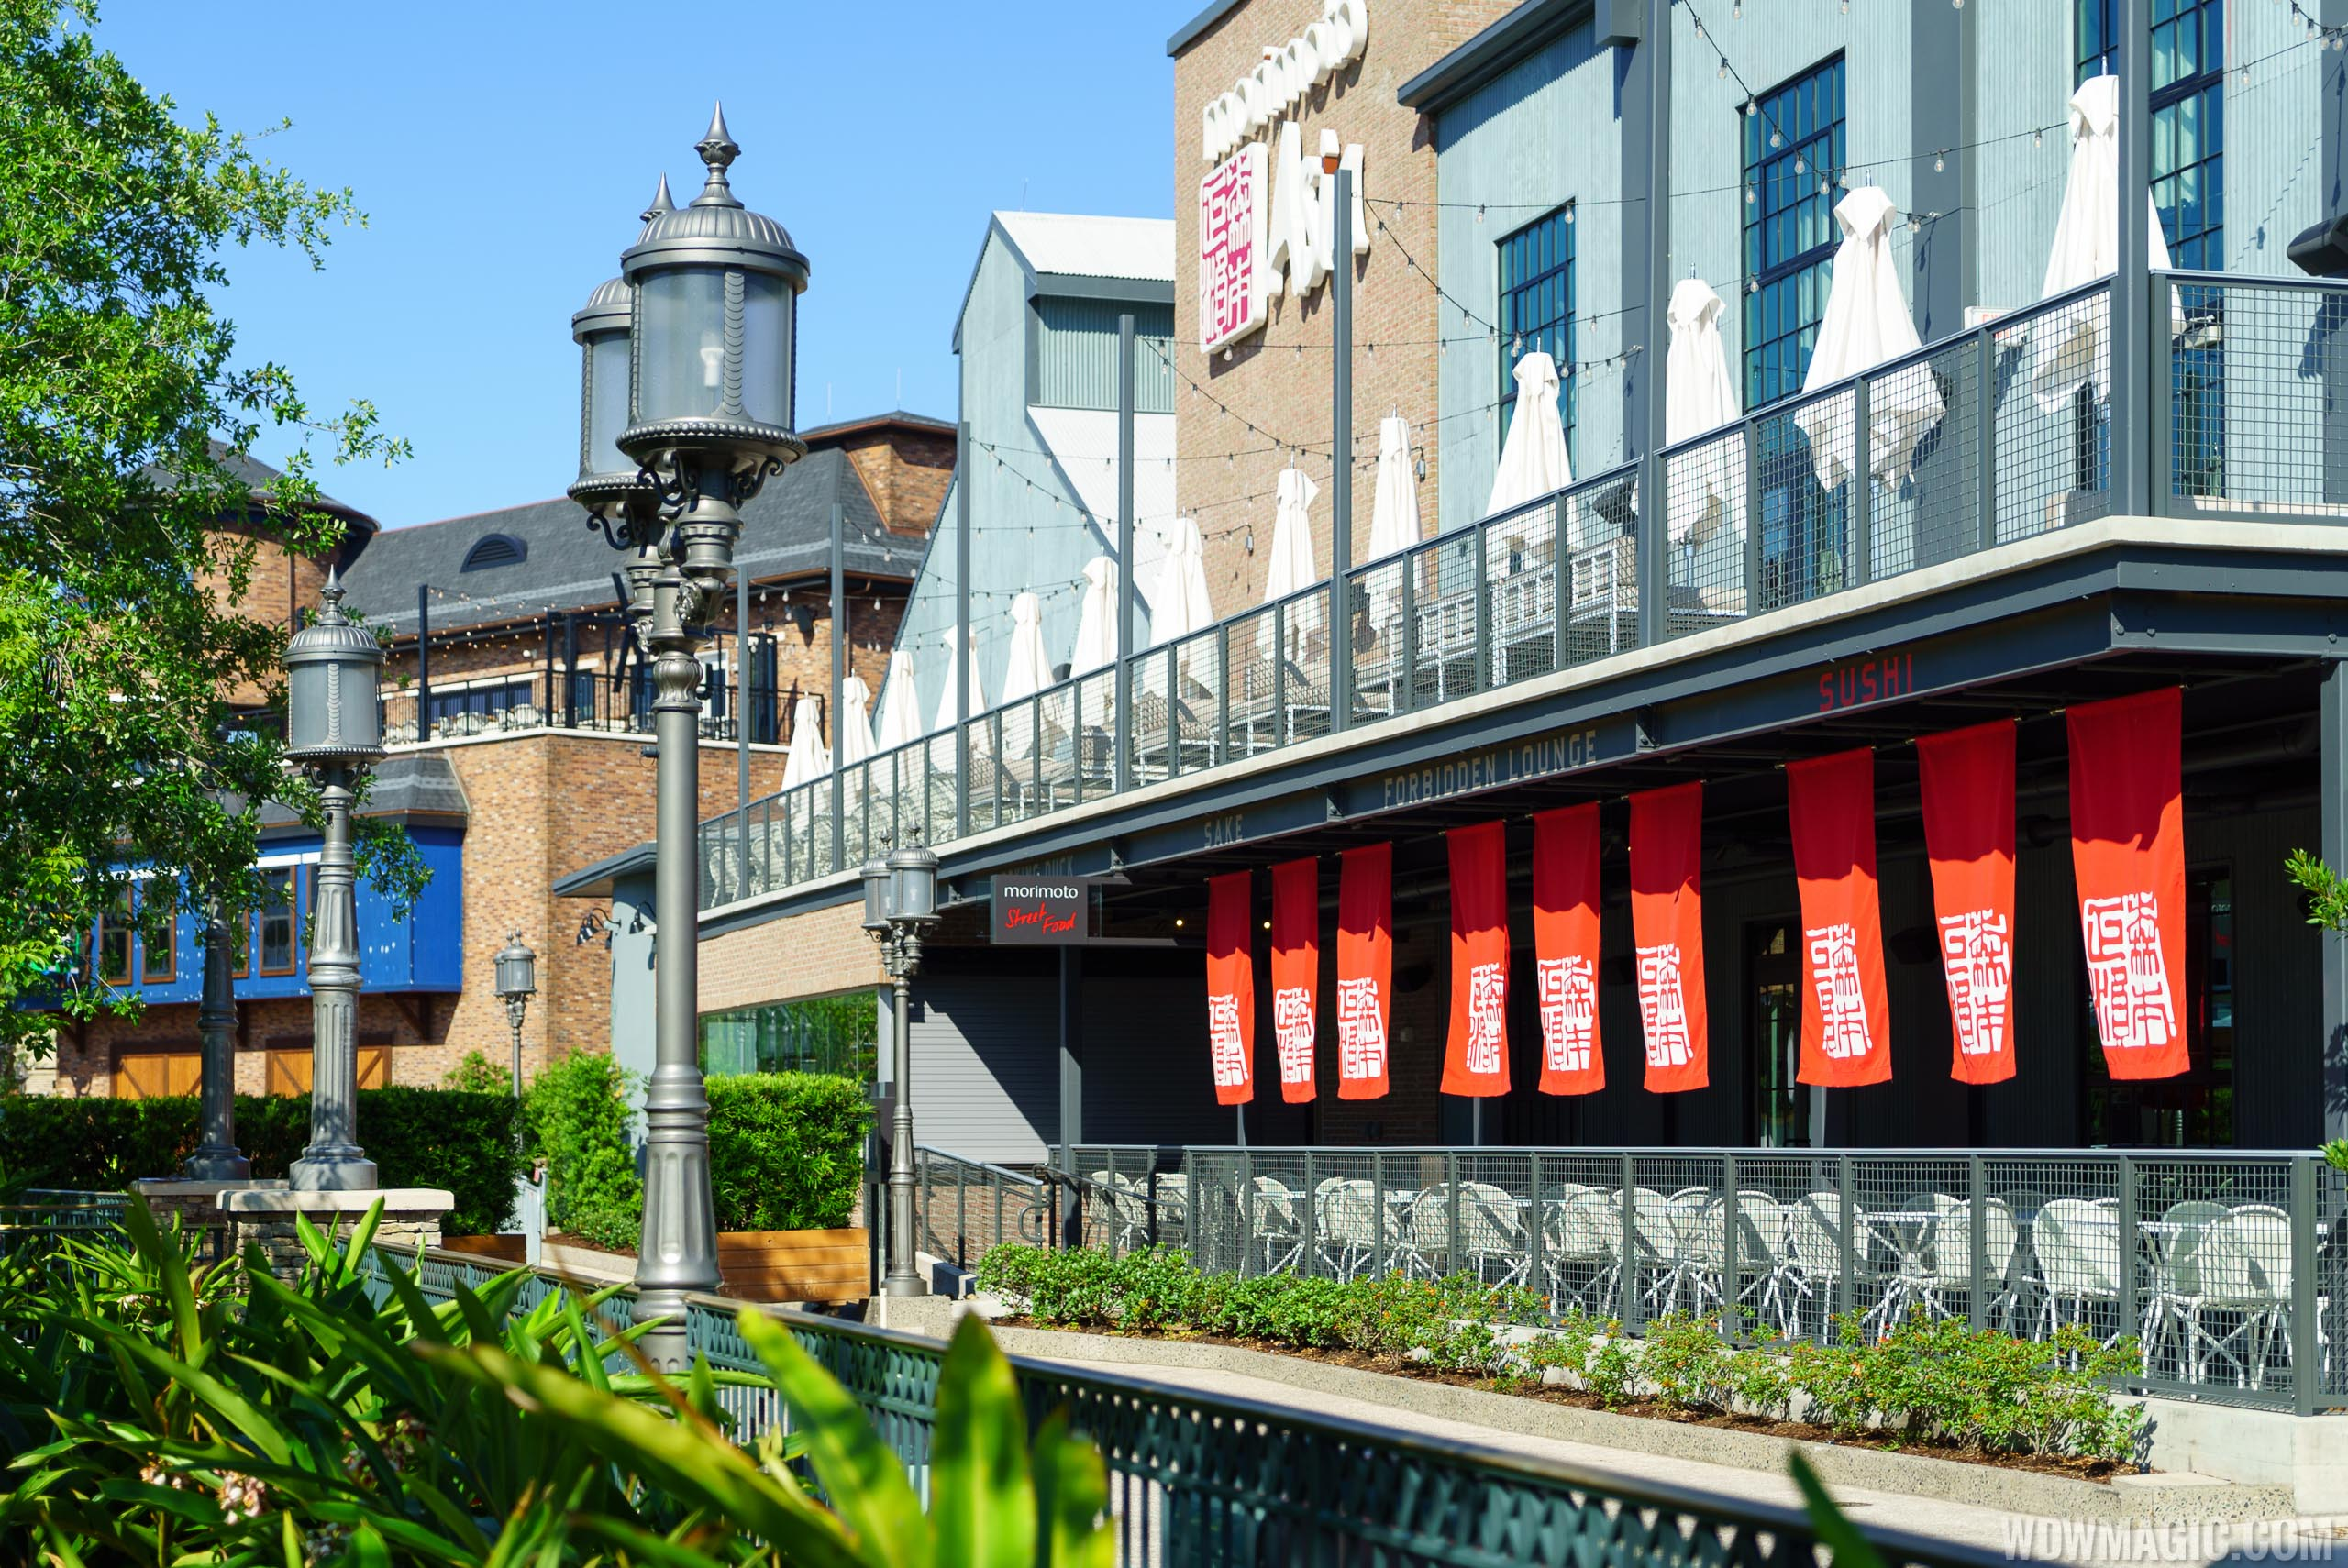 Morimoto Street Food is donating 100% of sales today